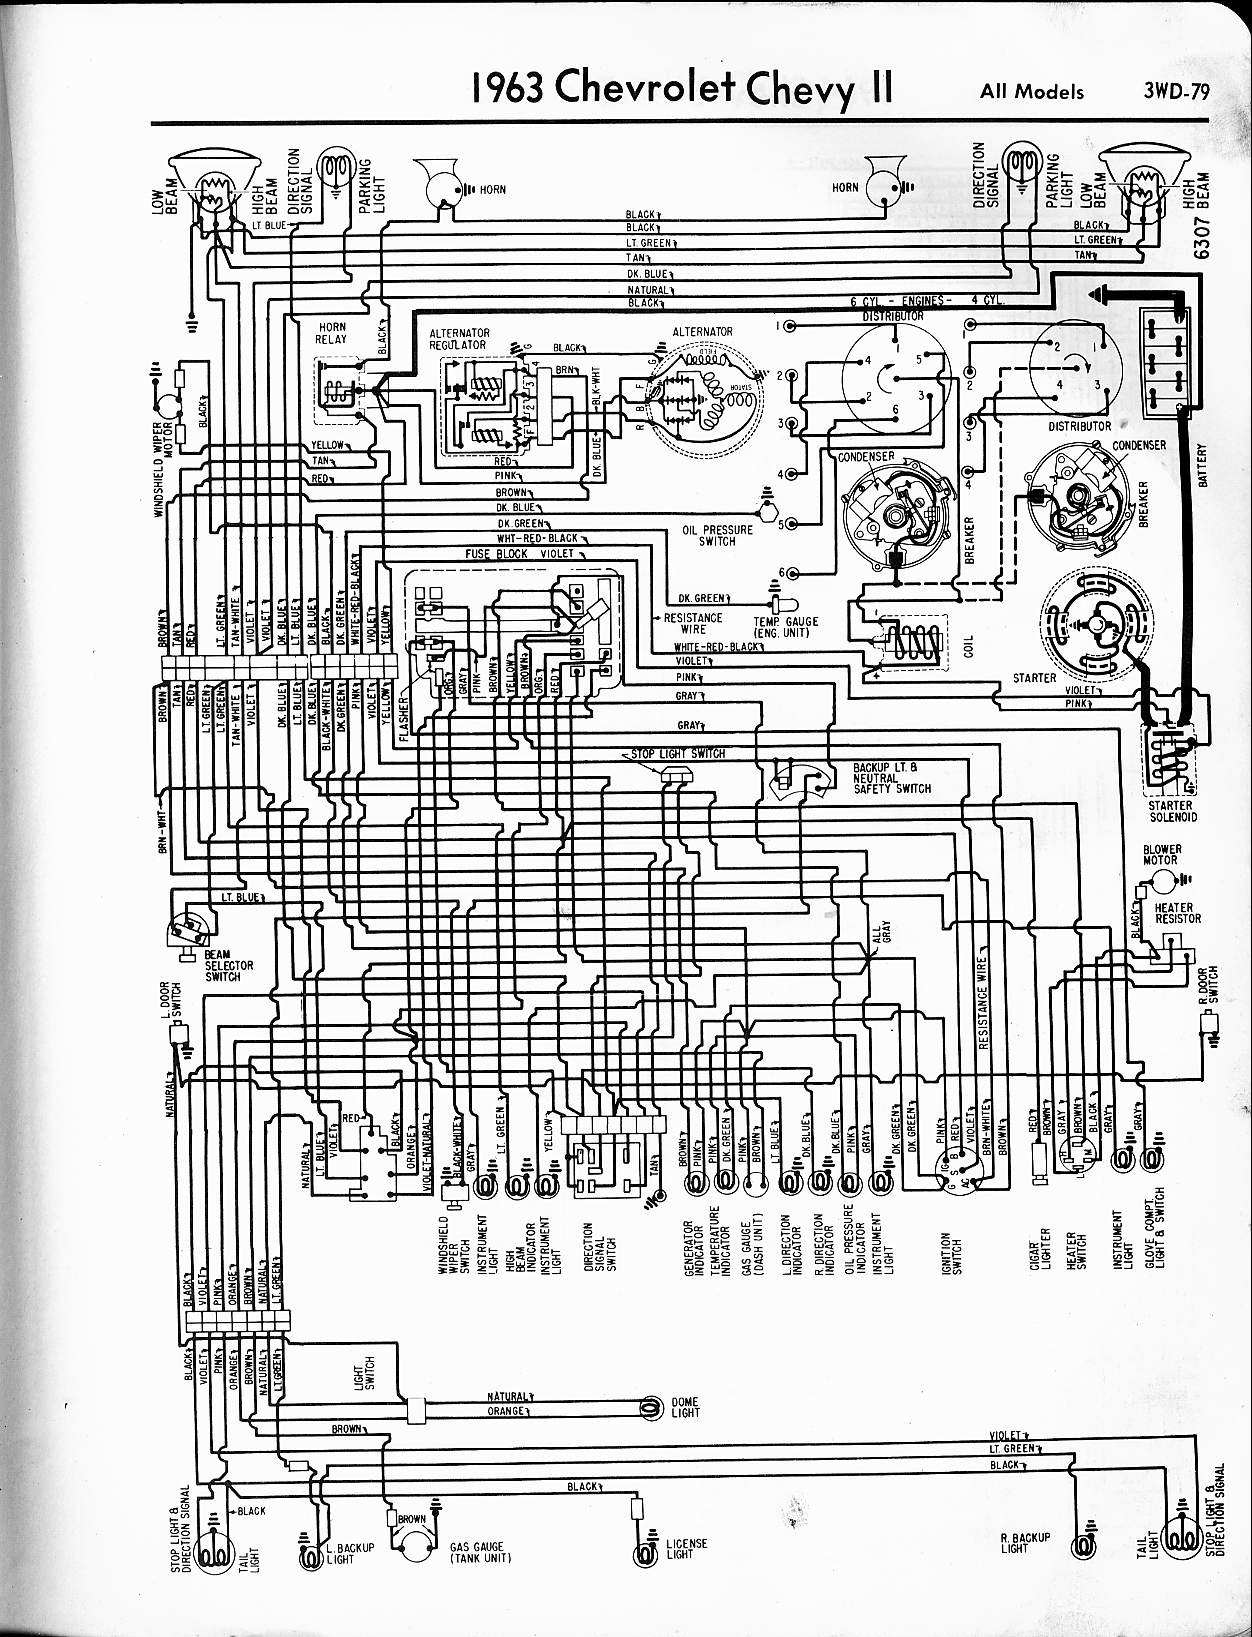 MWireChev63_3WD 079 1963 impala wiring diagram 1957 chevy bel air wiring diagram  at soozxer.org